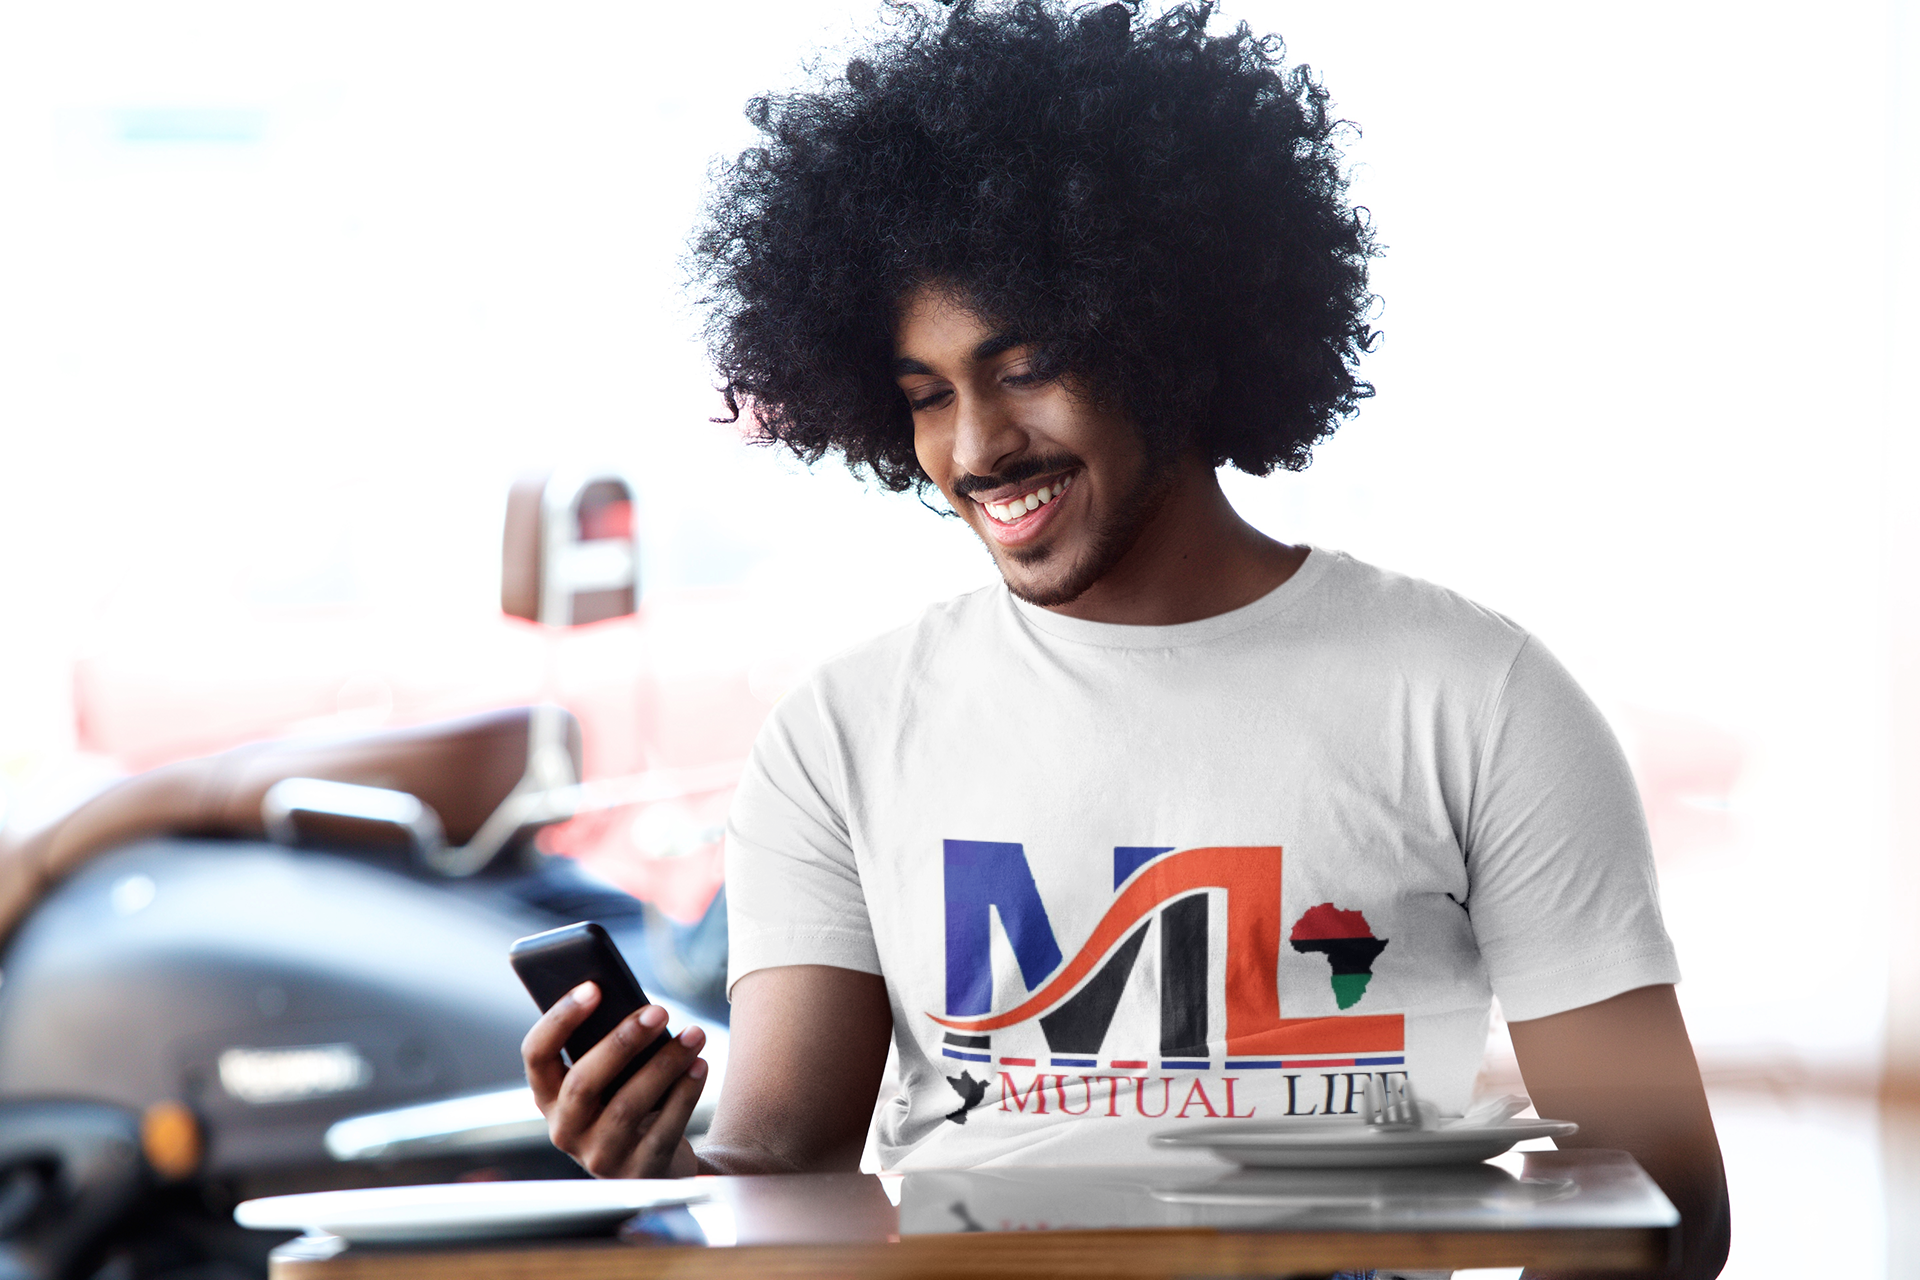 Become A Mutual Life Sales Agent